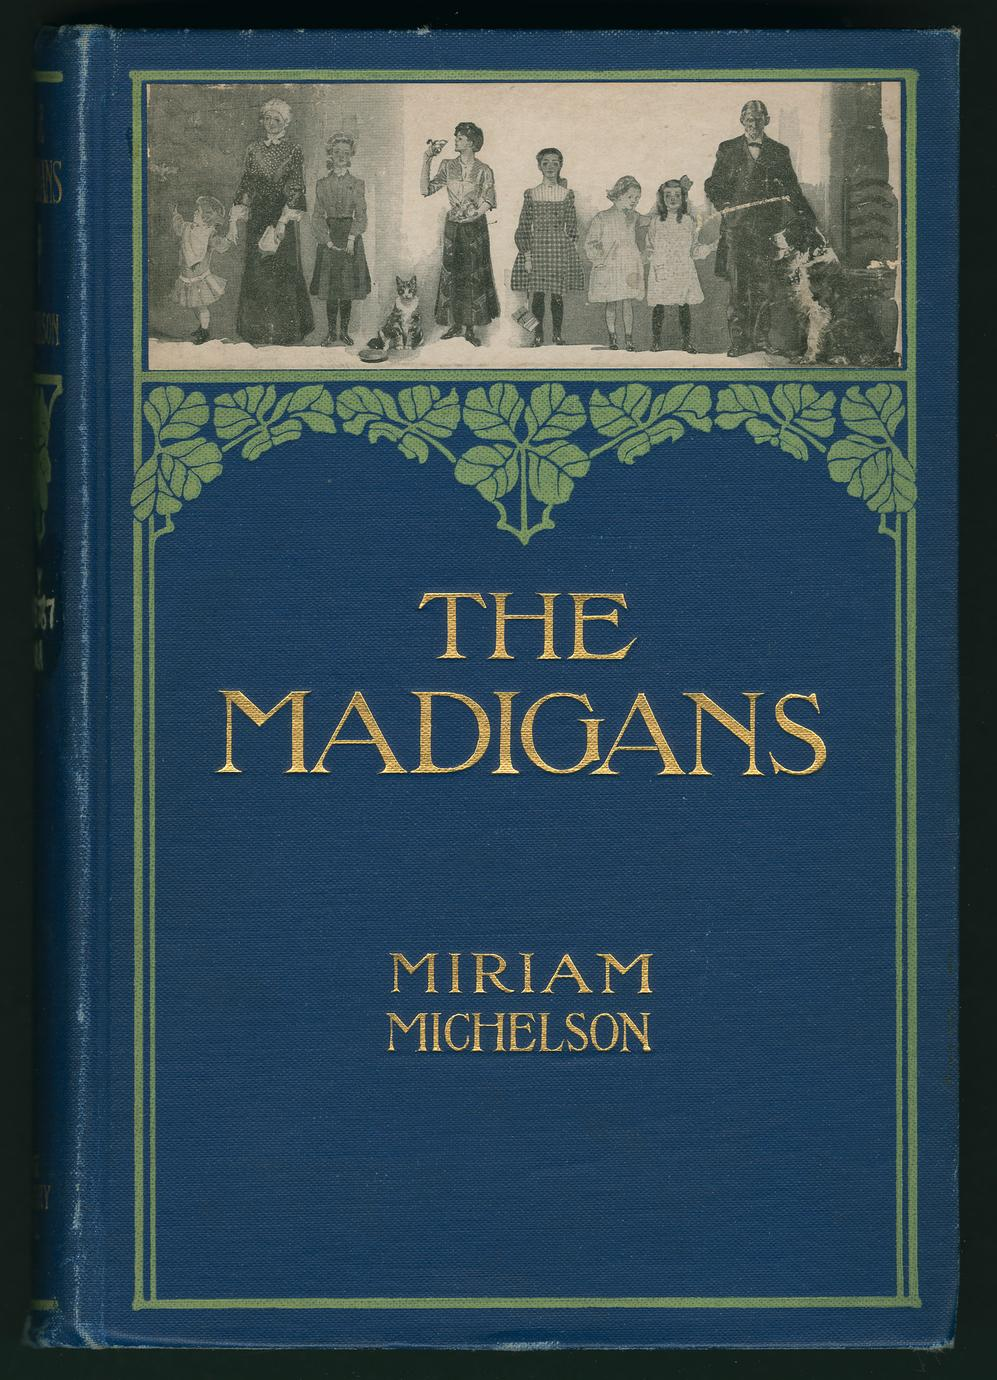 The Madigans (1 of 2)